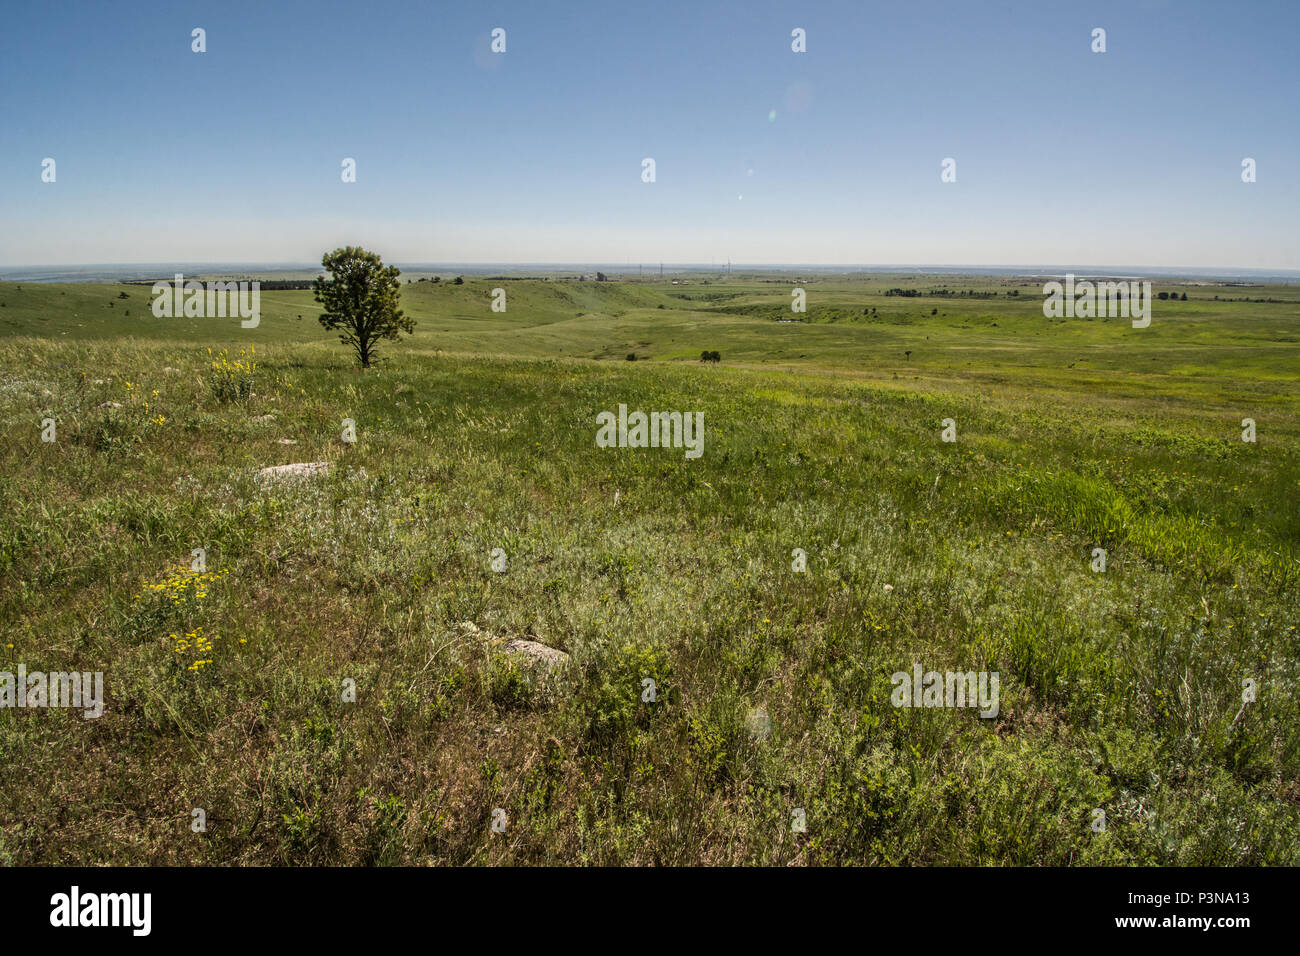 Western Great Plains Foothill and Piedmont Grassland in Jefferson County, Colorado, USA. - Stock Image